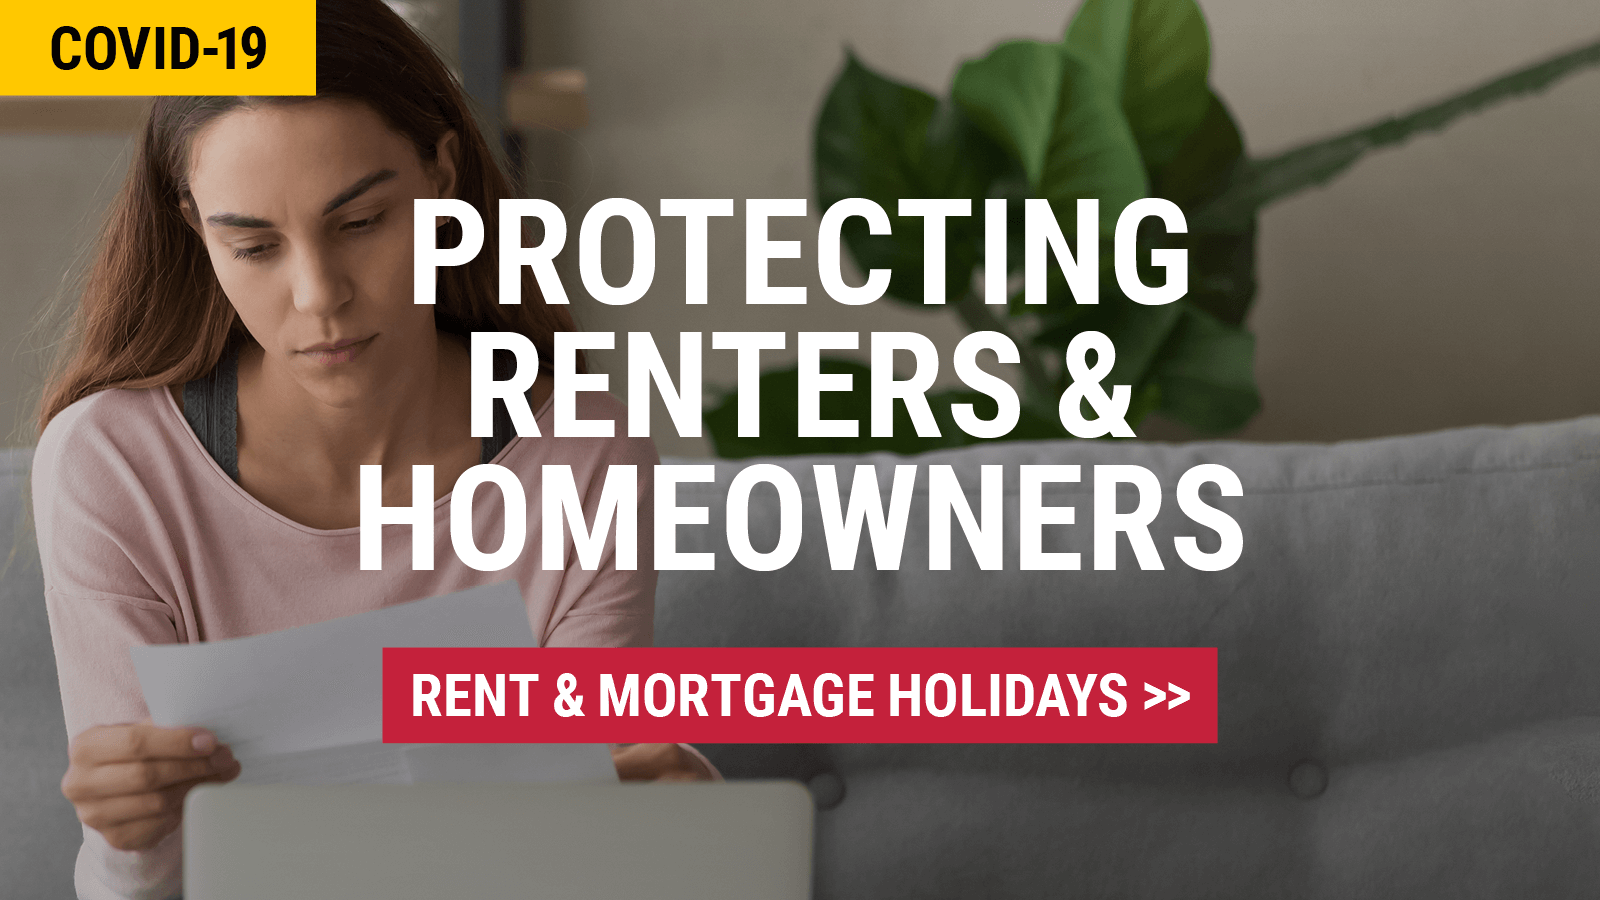 Protecting renters and homeowners during Covid19 | Add your voice